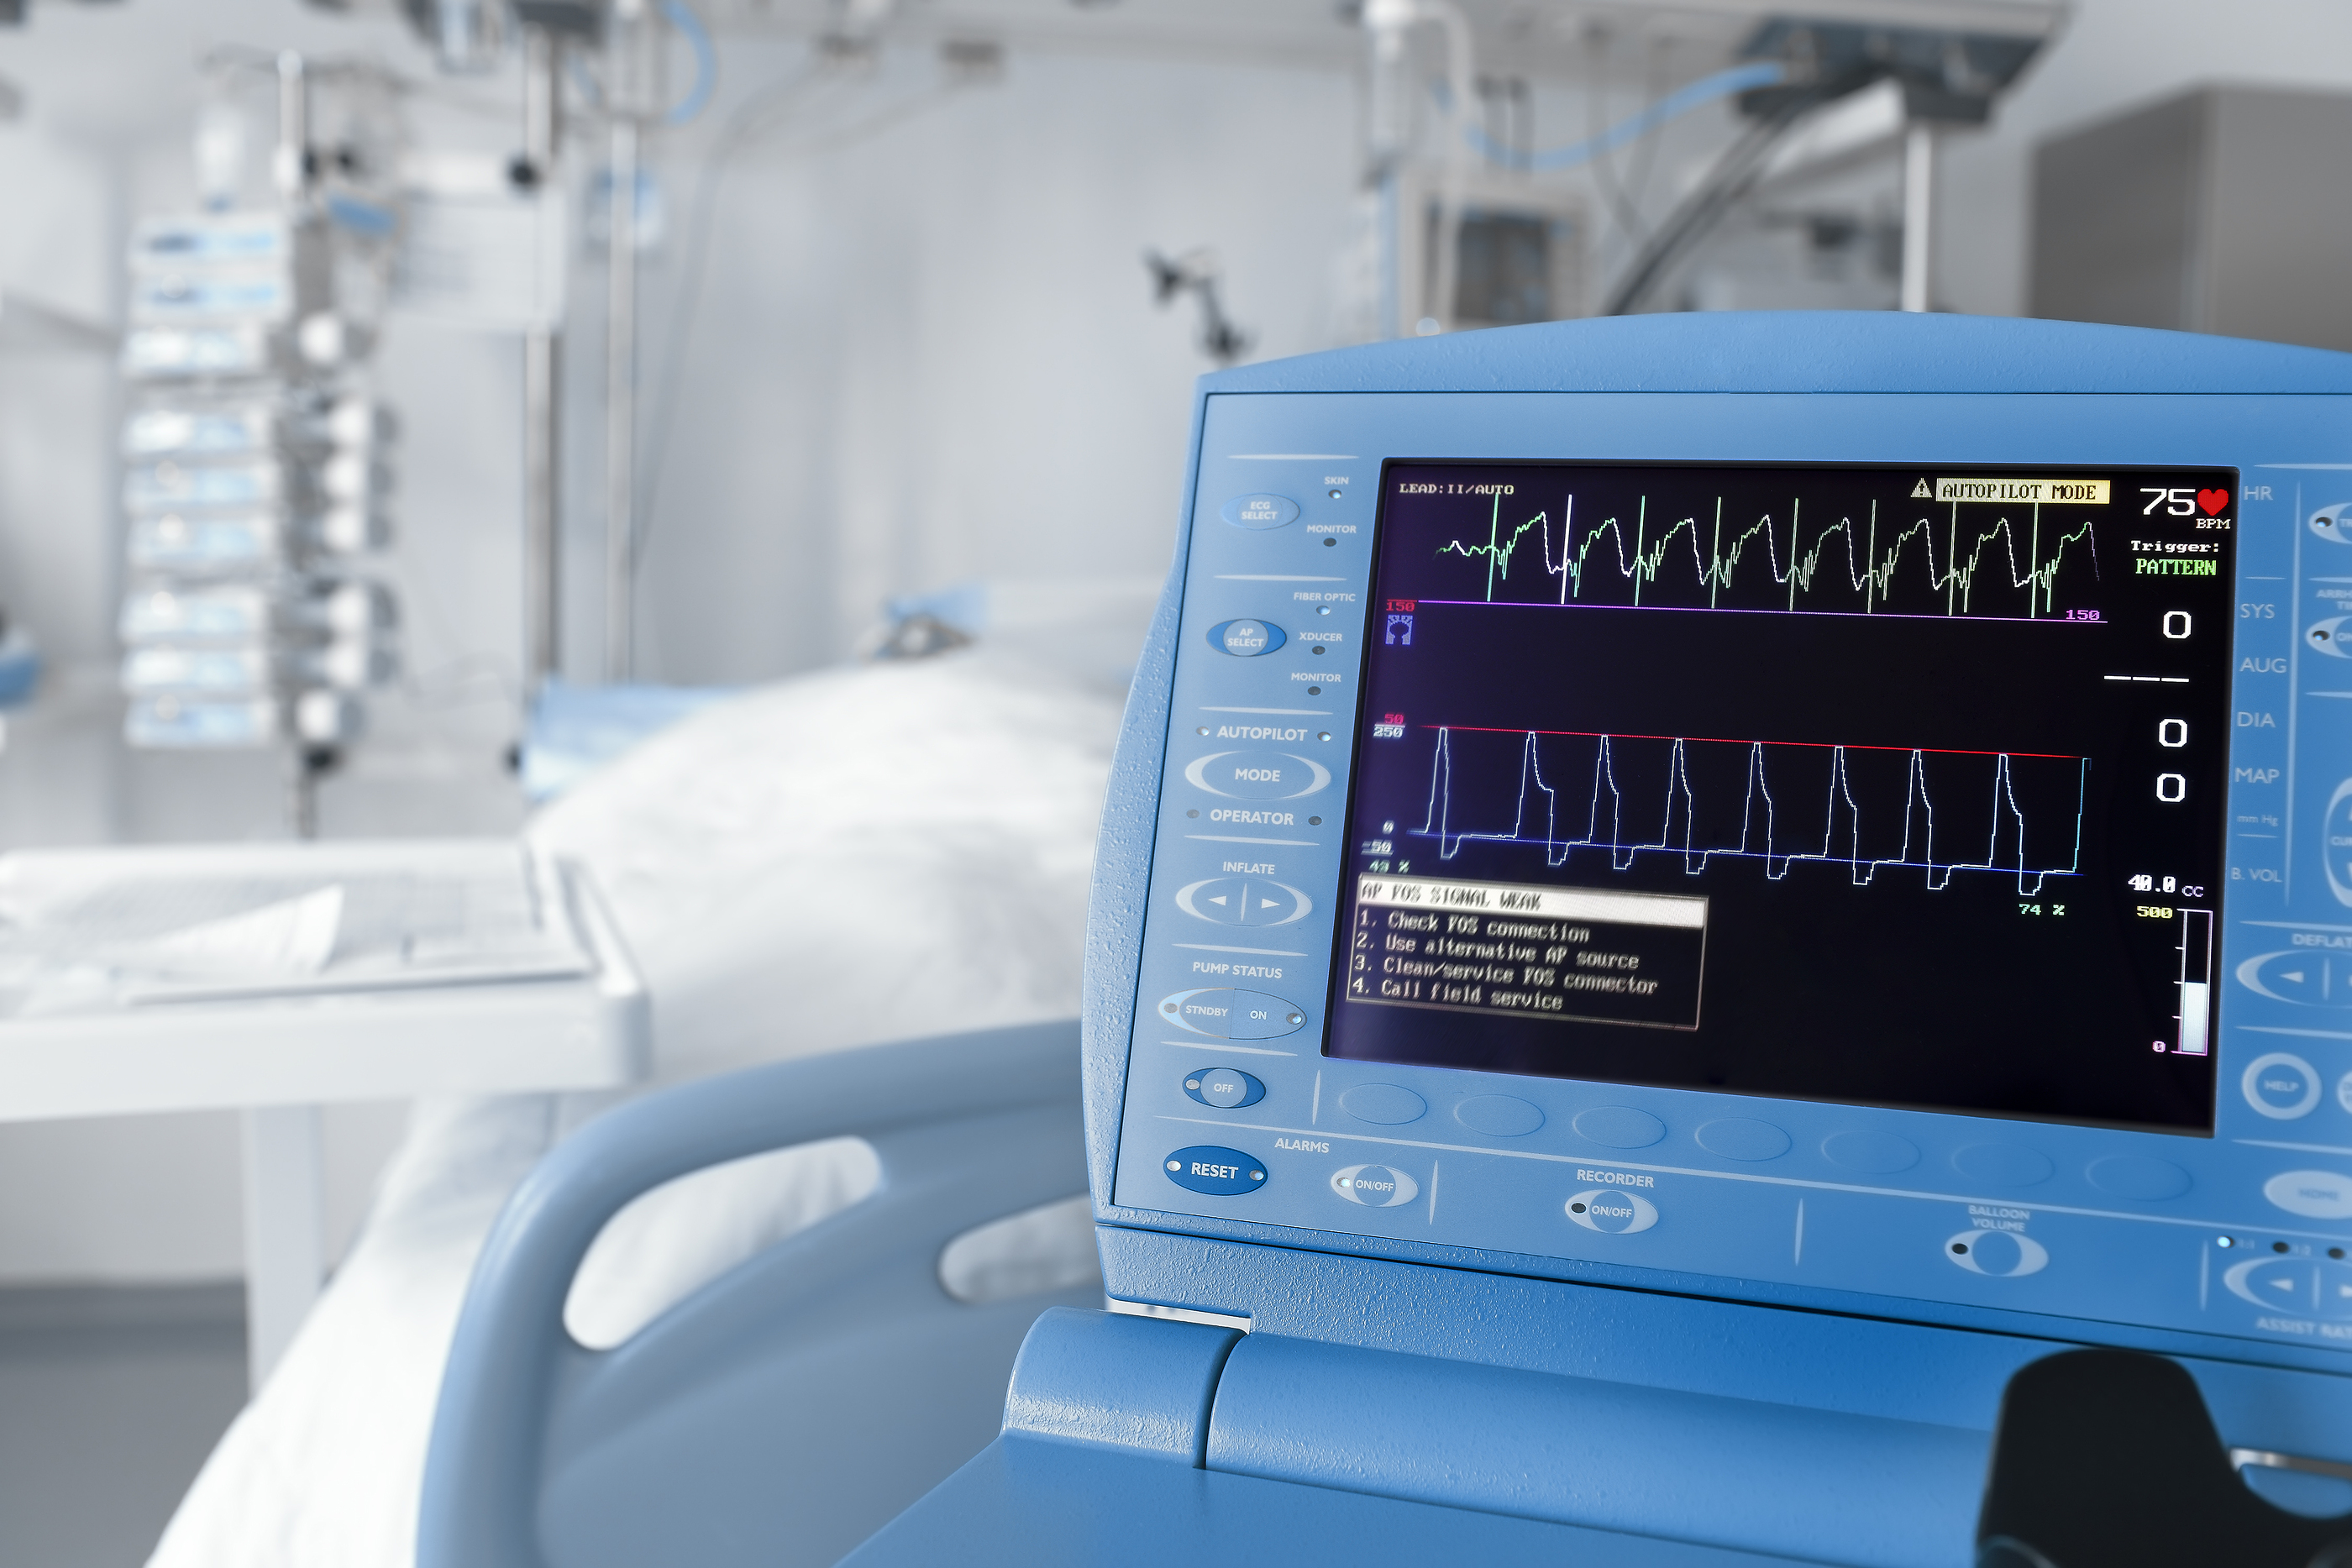 Icu Room And Cardiovascular Monitor